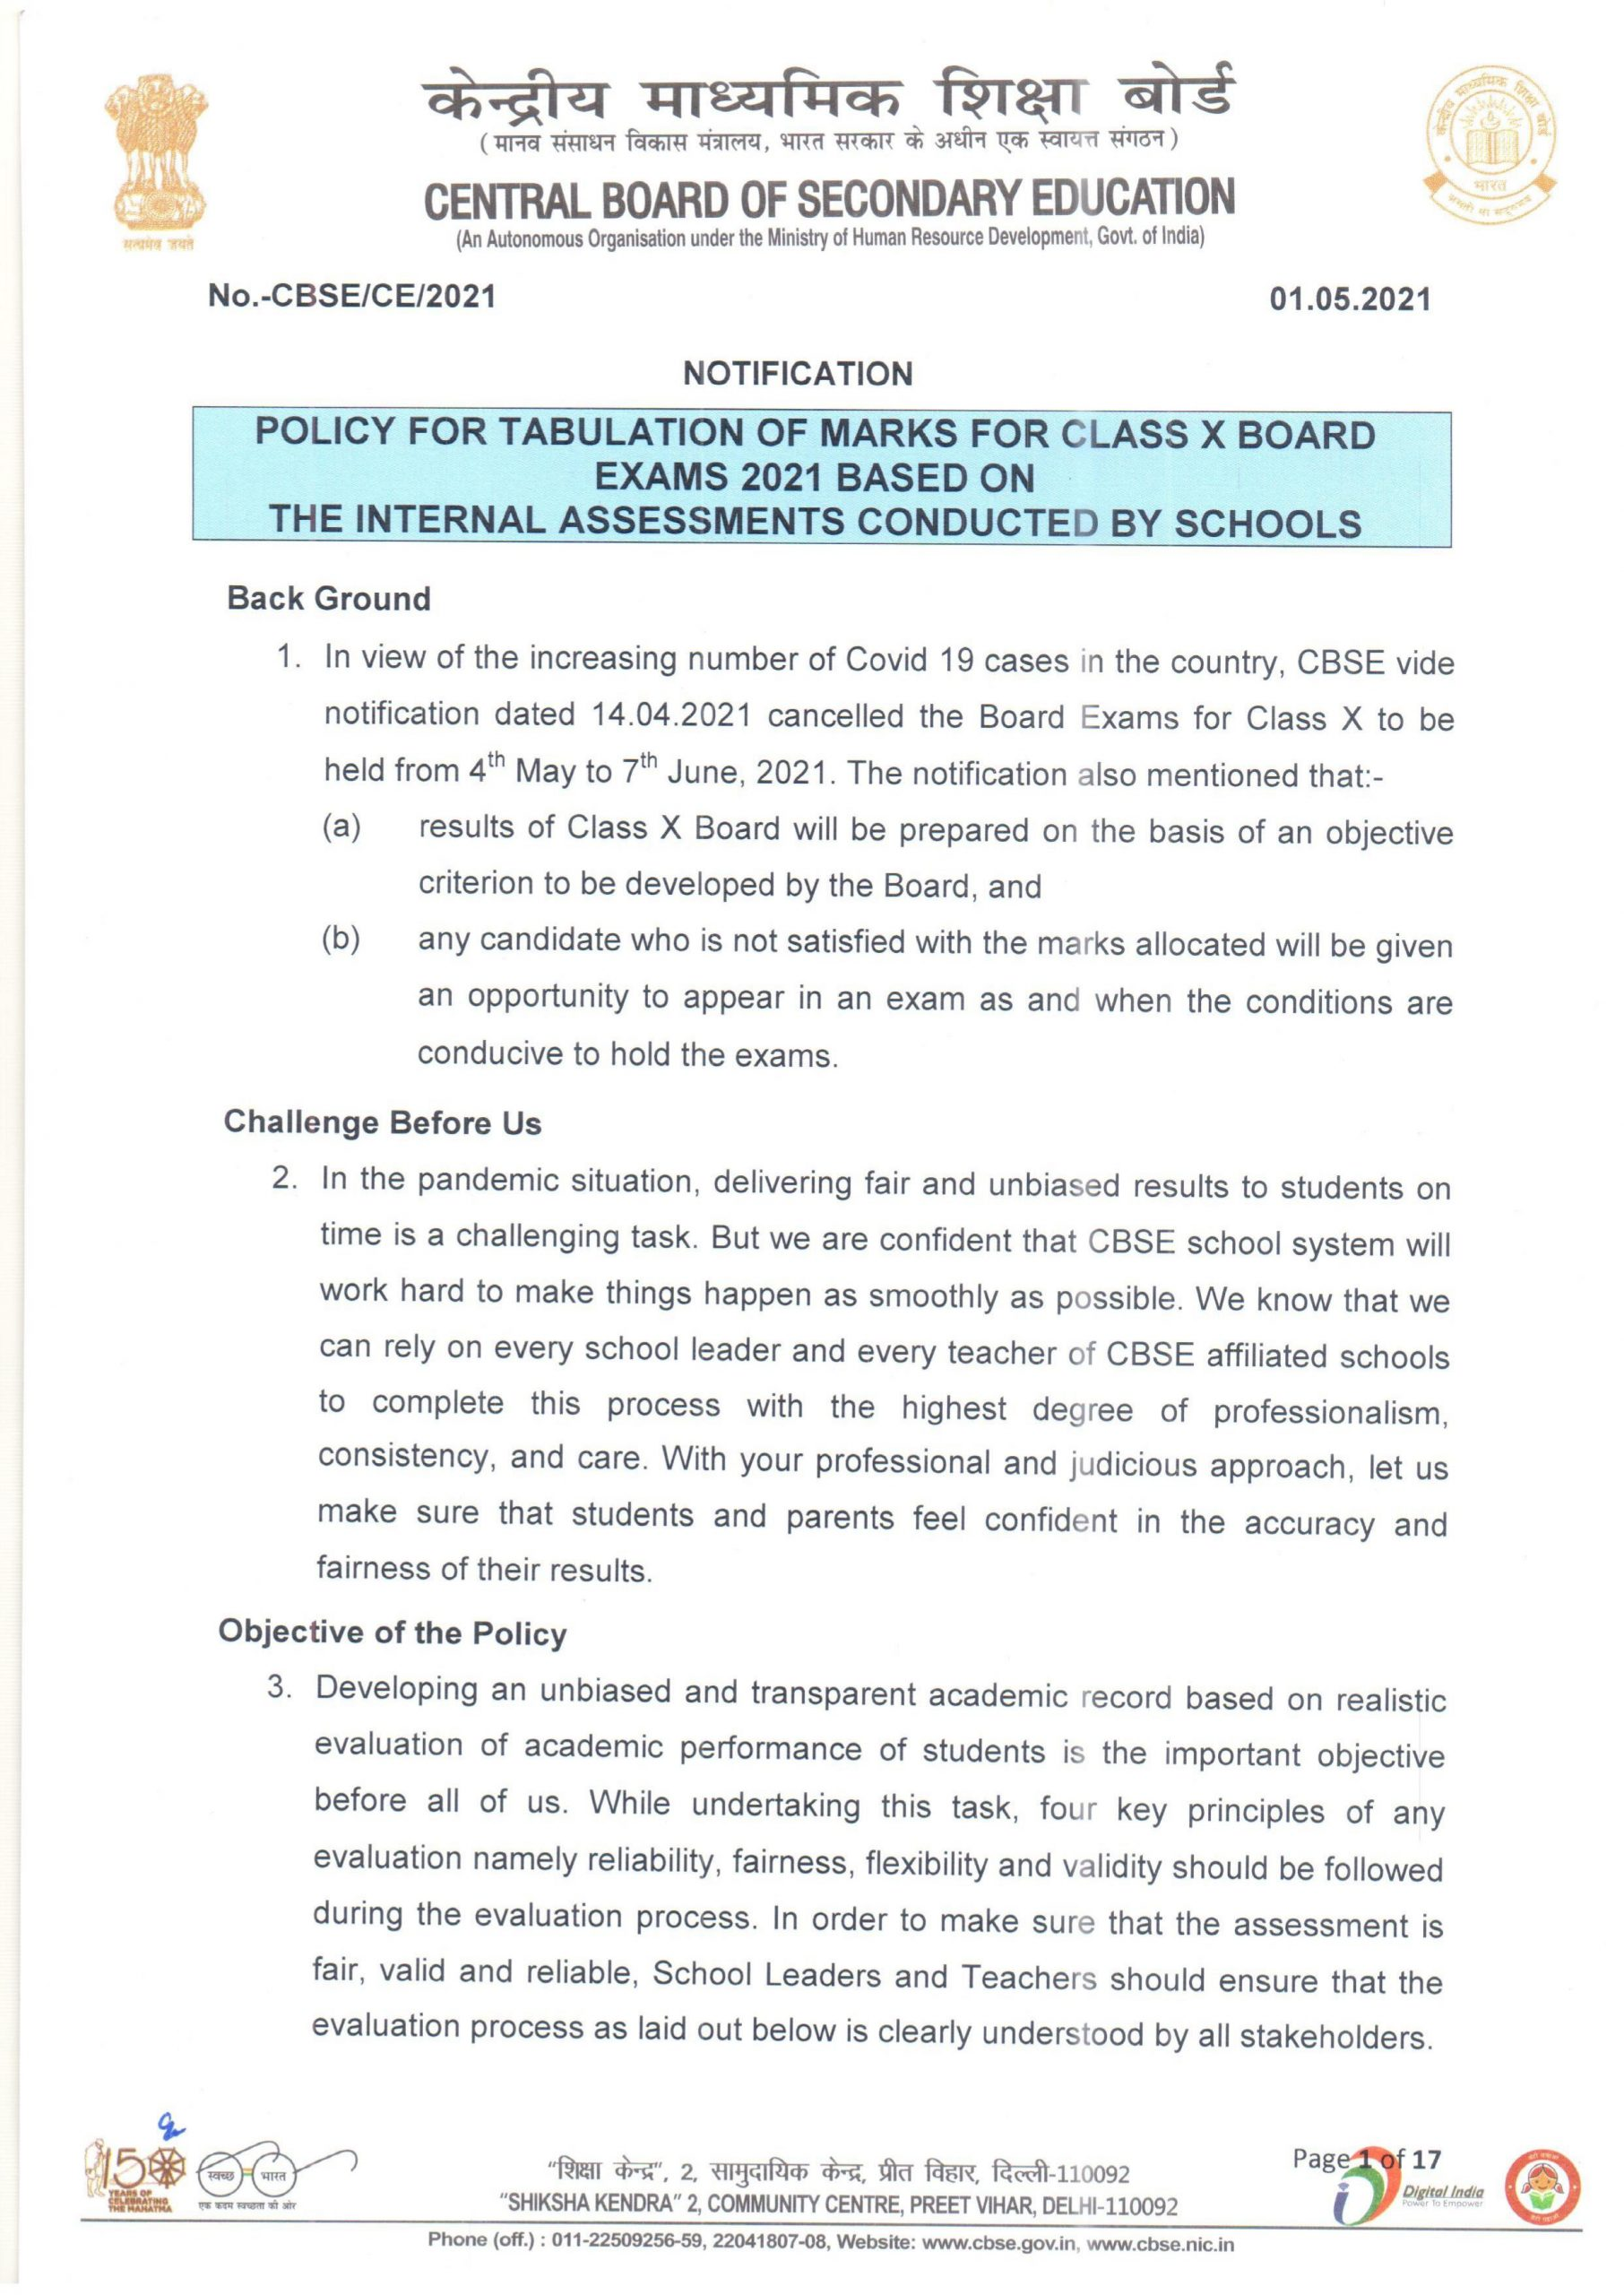 Policy for Tabulation of Marks Class 10 Board Exams 2021 by CBSE